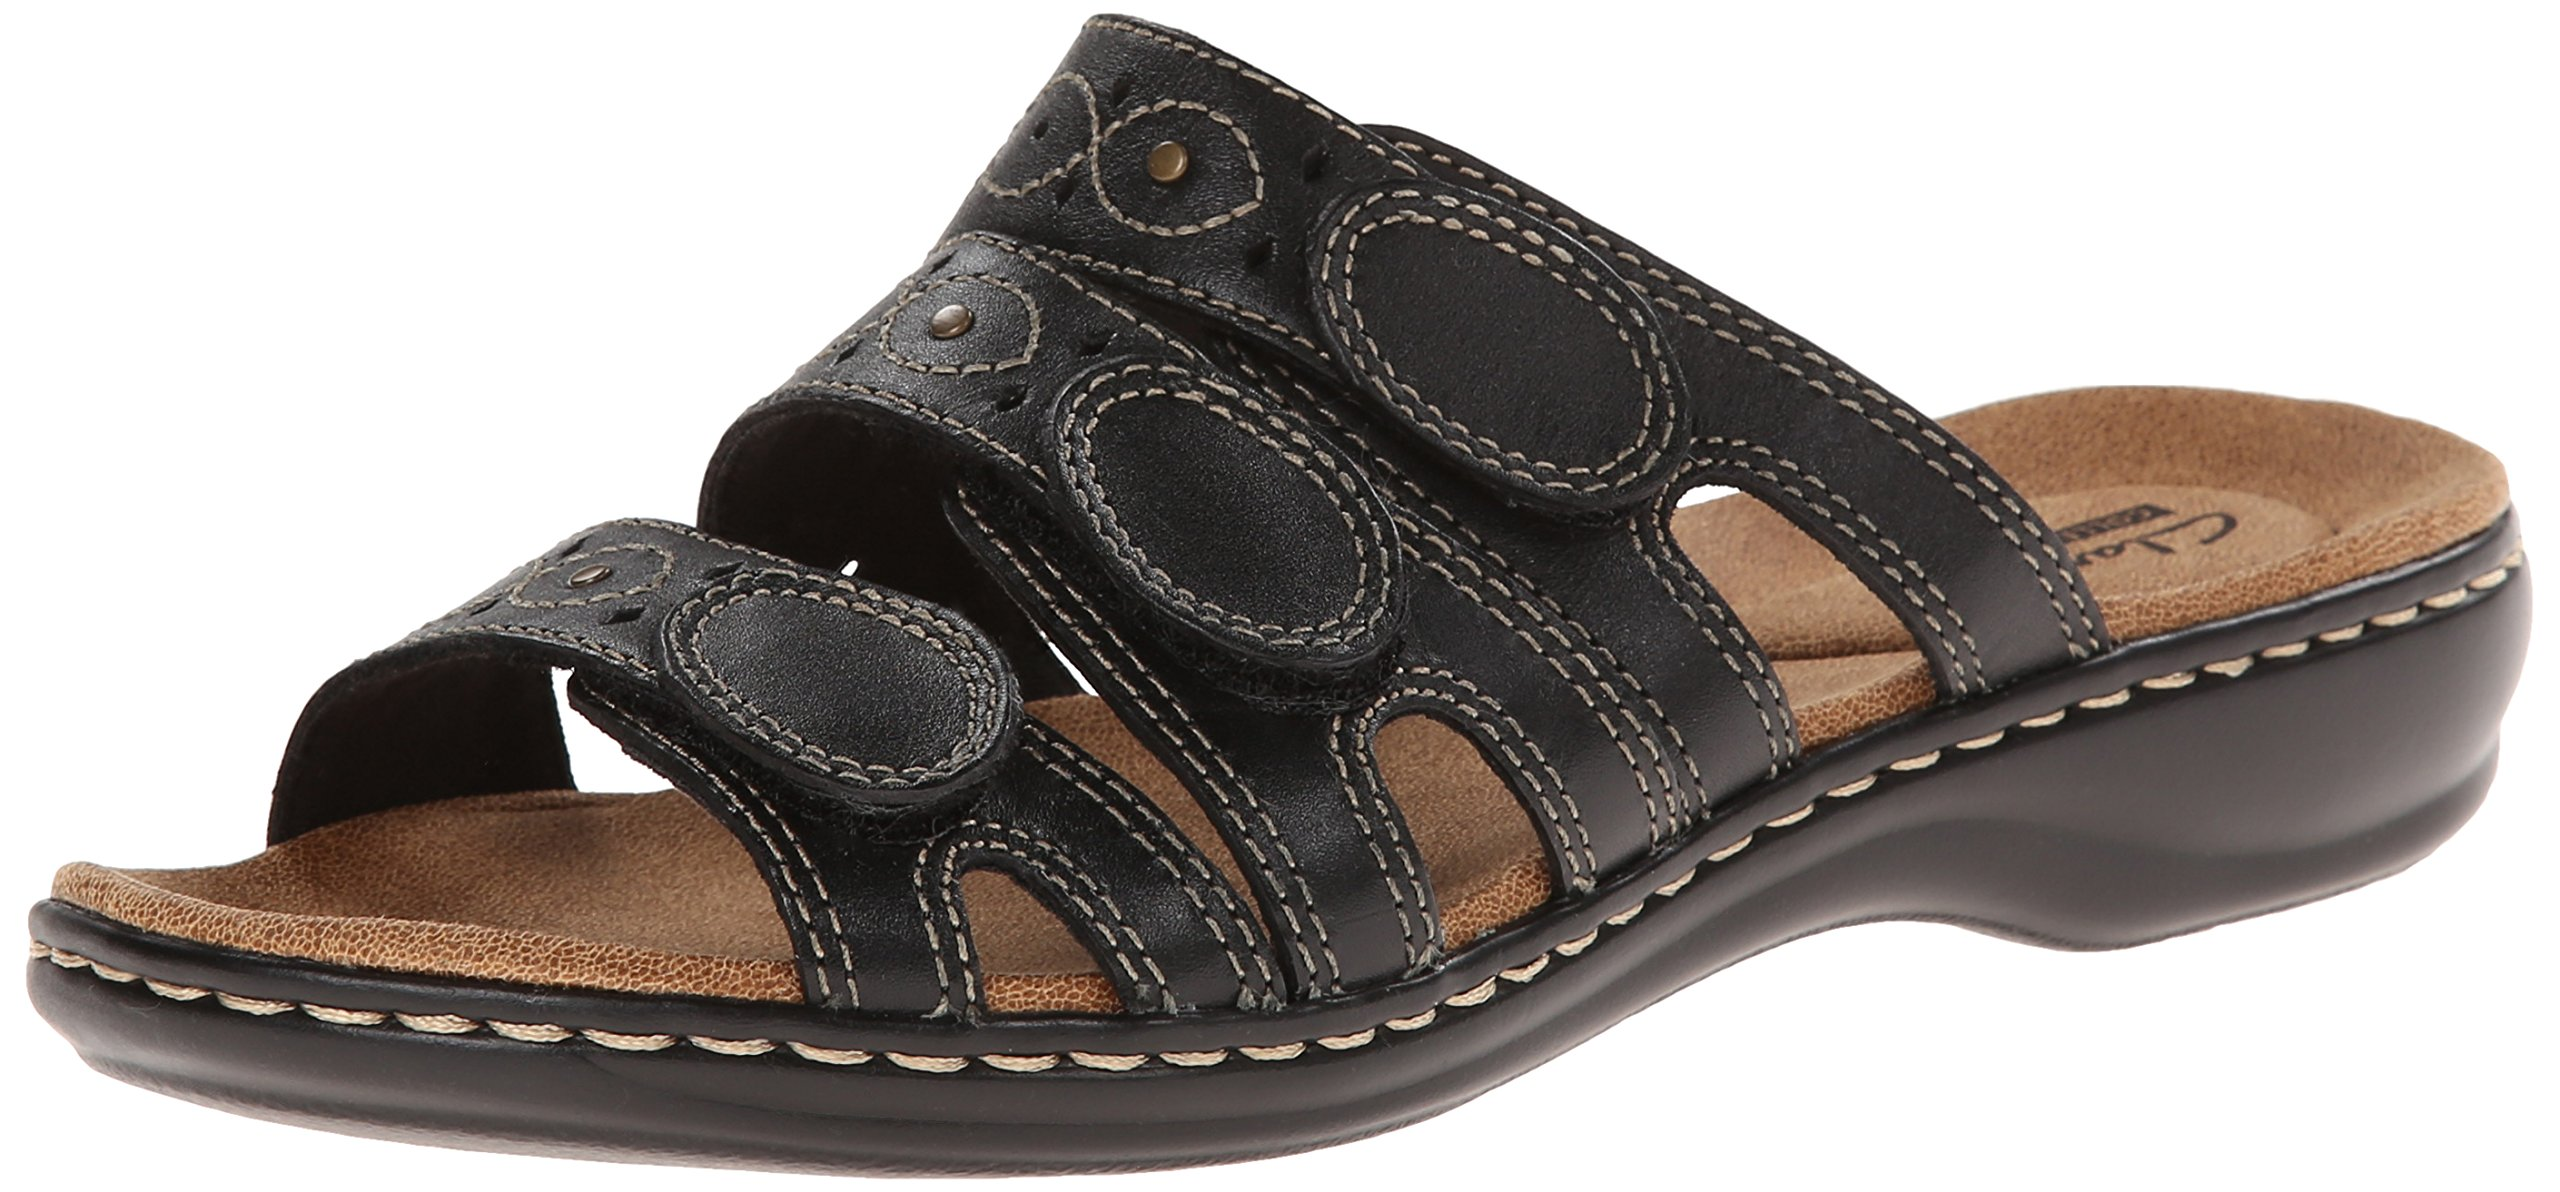 CLARKS Women's Leisa Cacti Slide Sandal, Black Leather, 10 M US